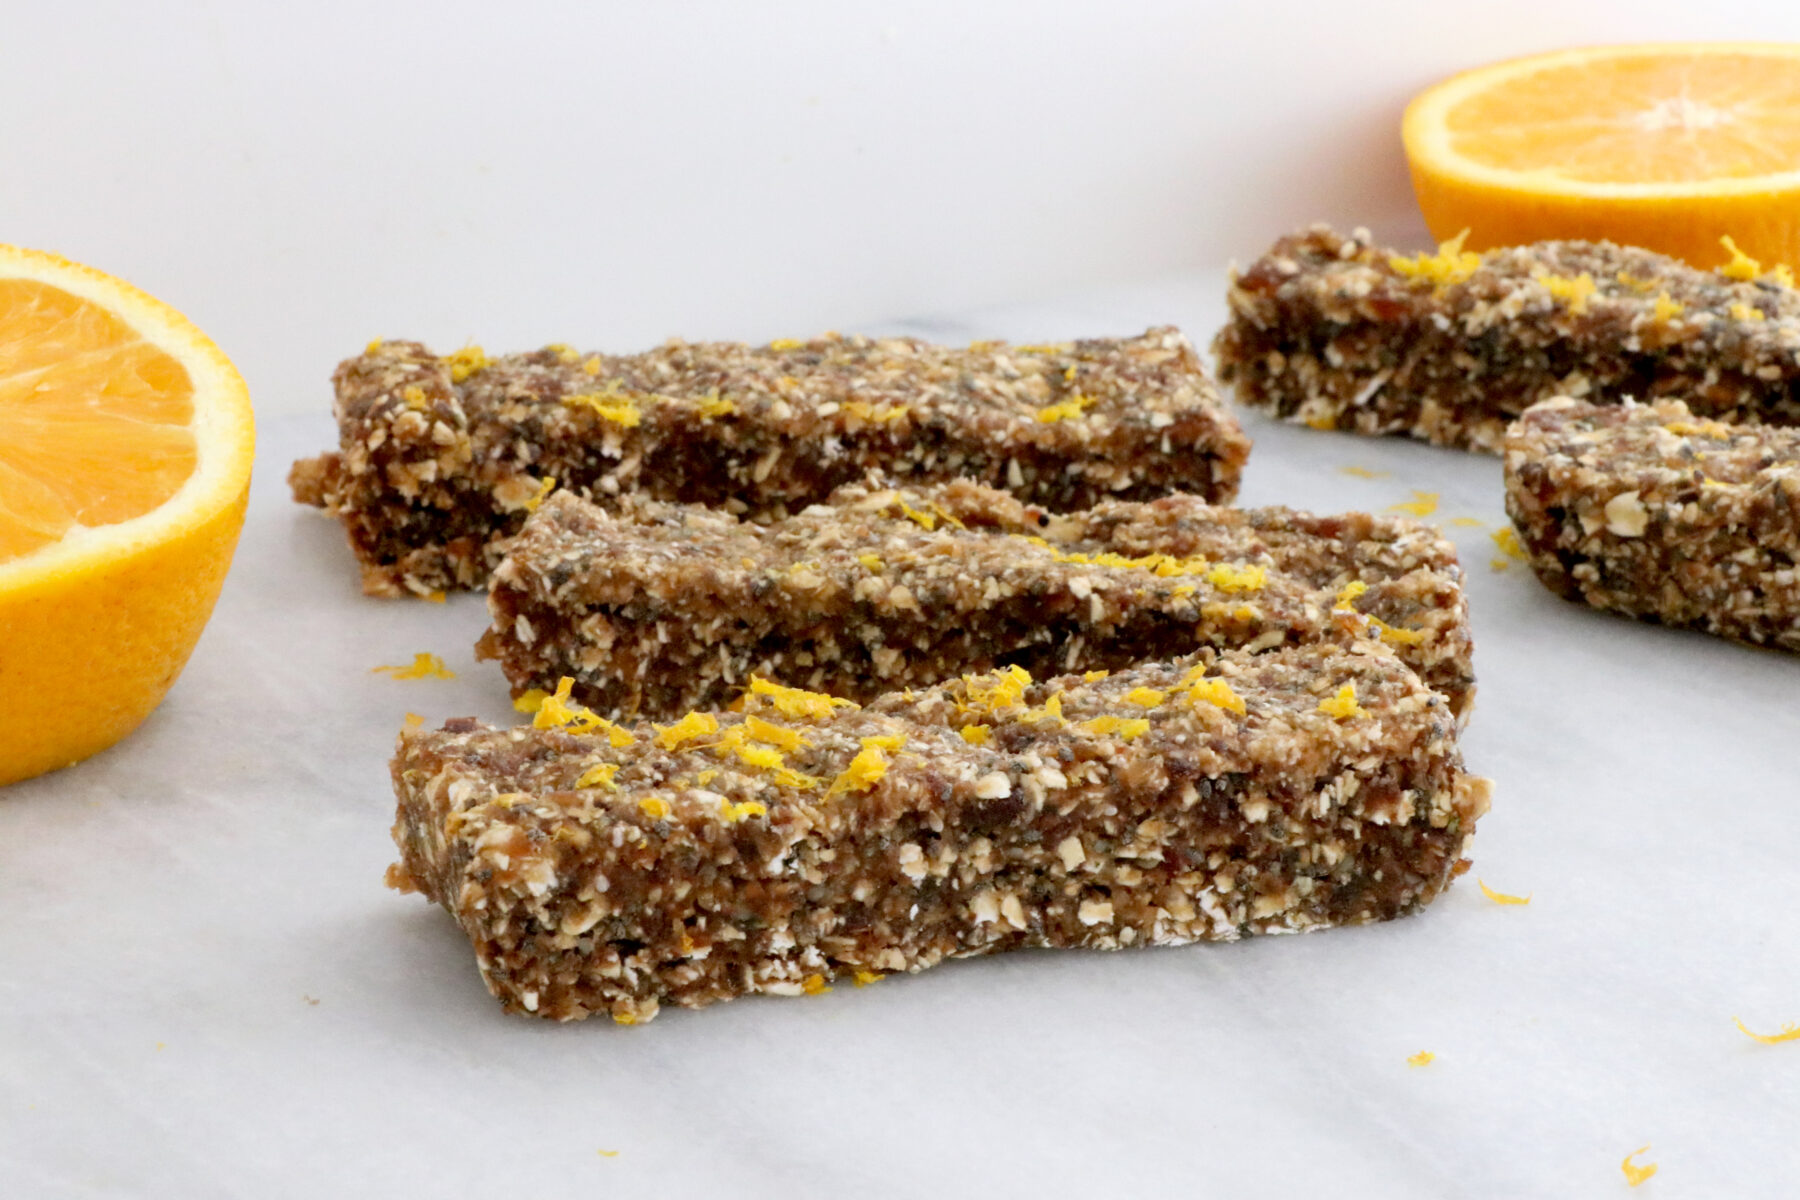 3 energy bars filled with dates, oranges and oats in center of photo. Orange slices on each side.